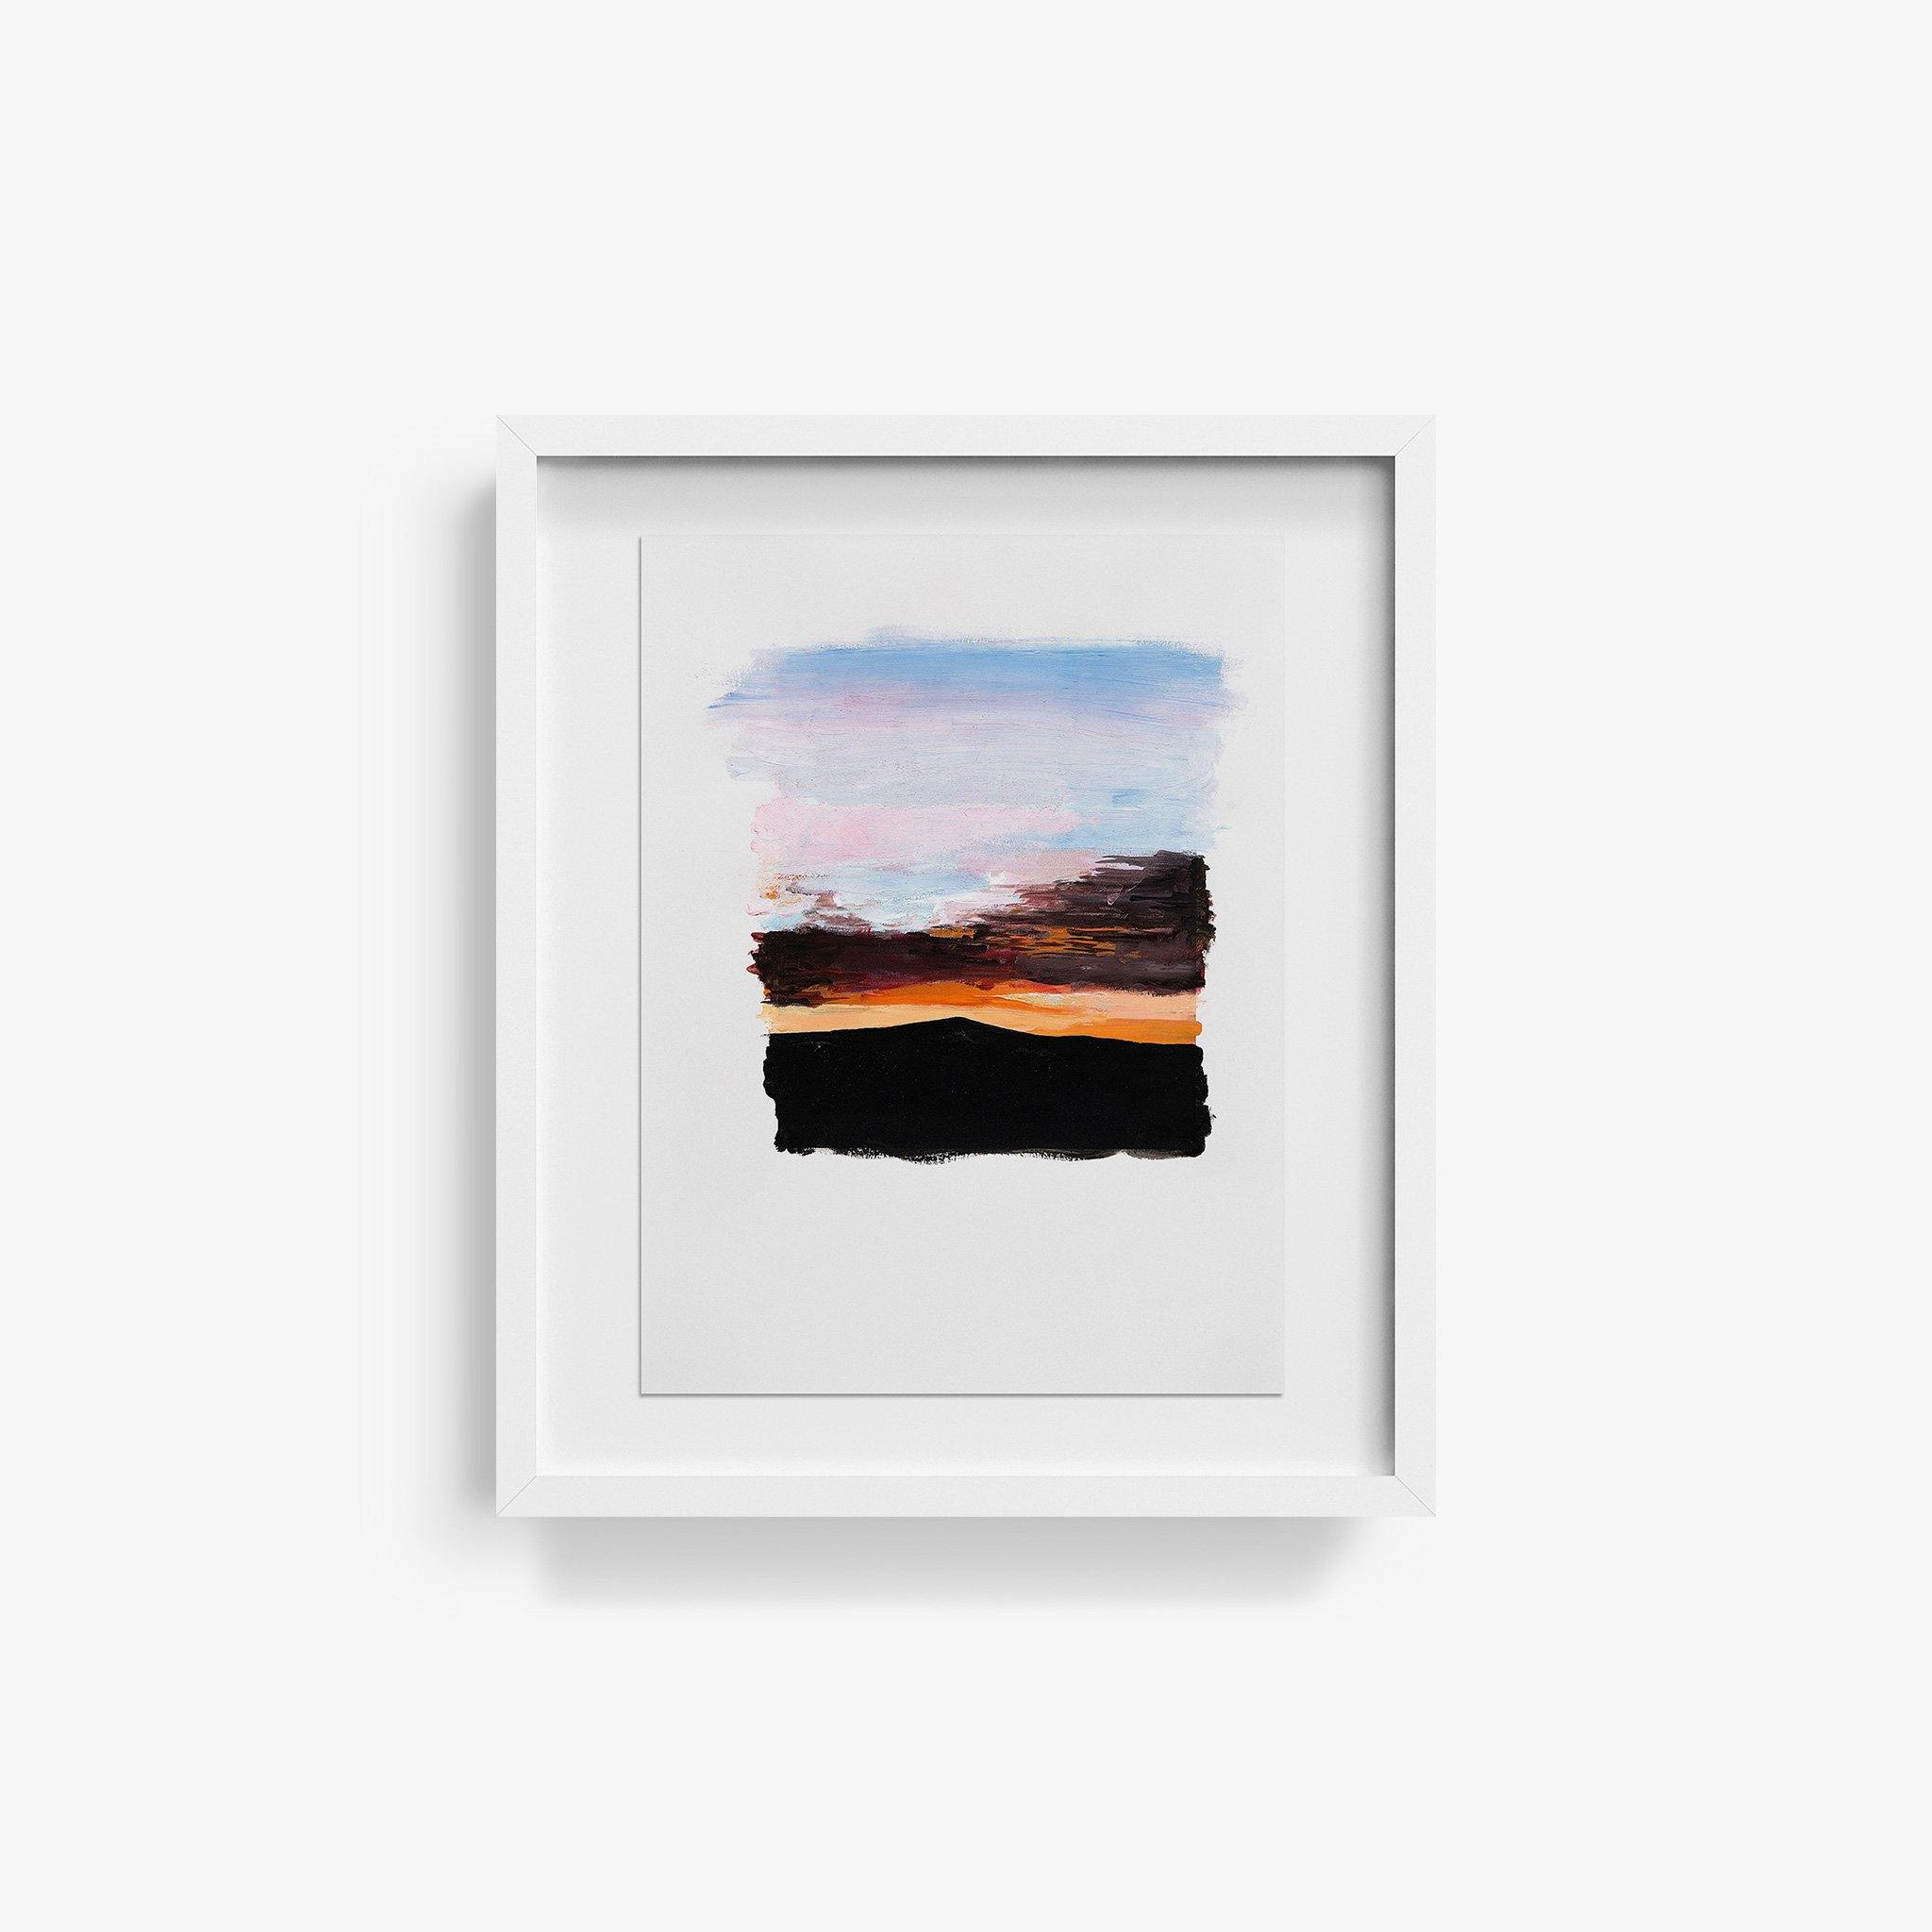 Untitled (Sunset)